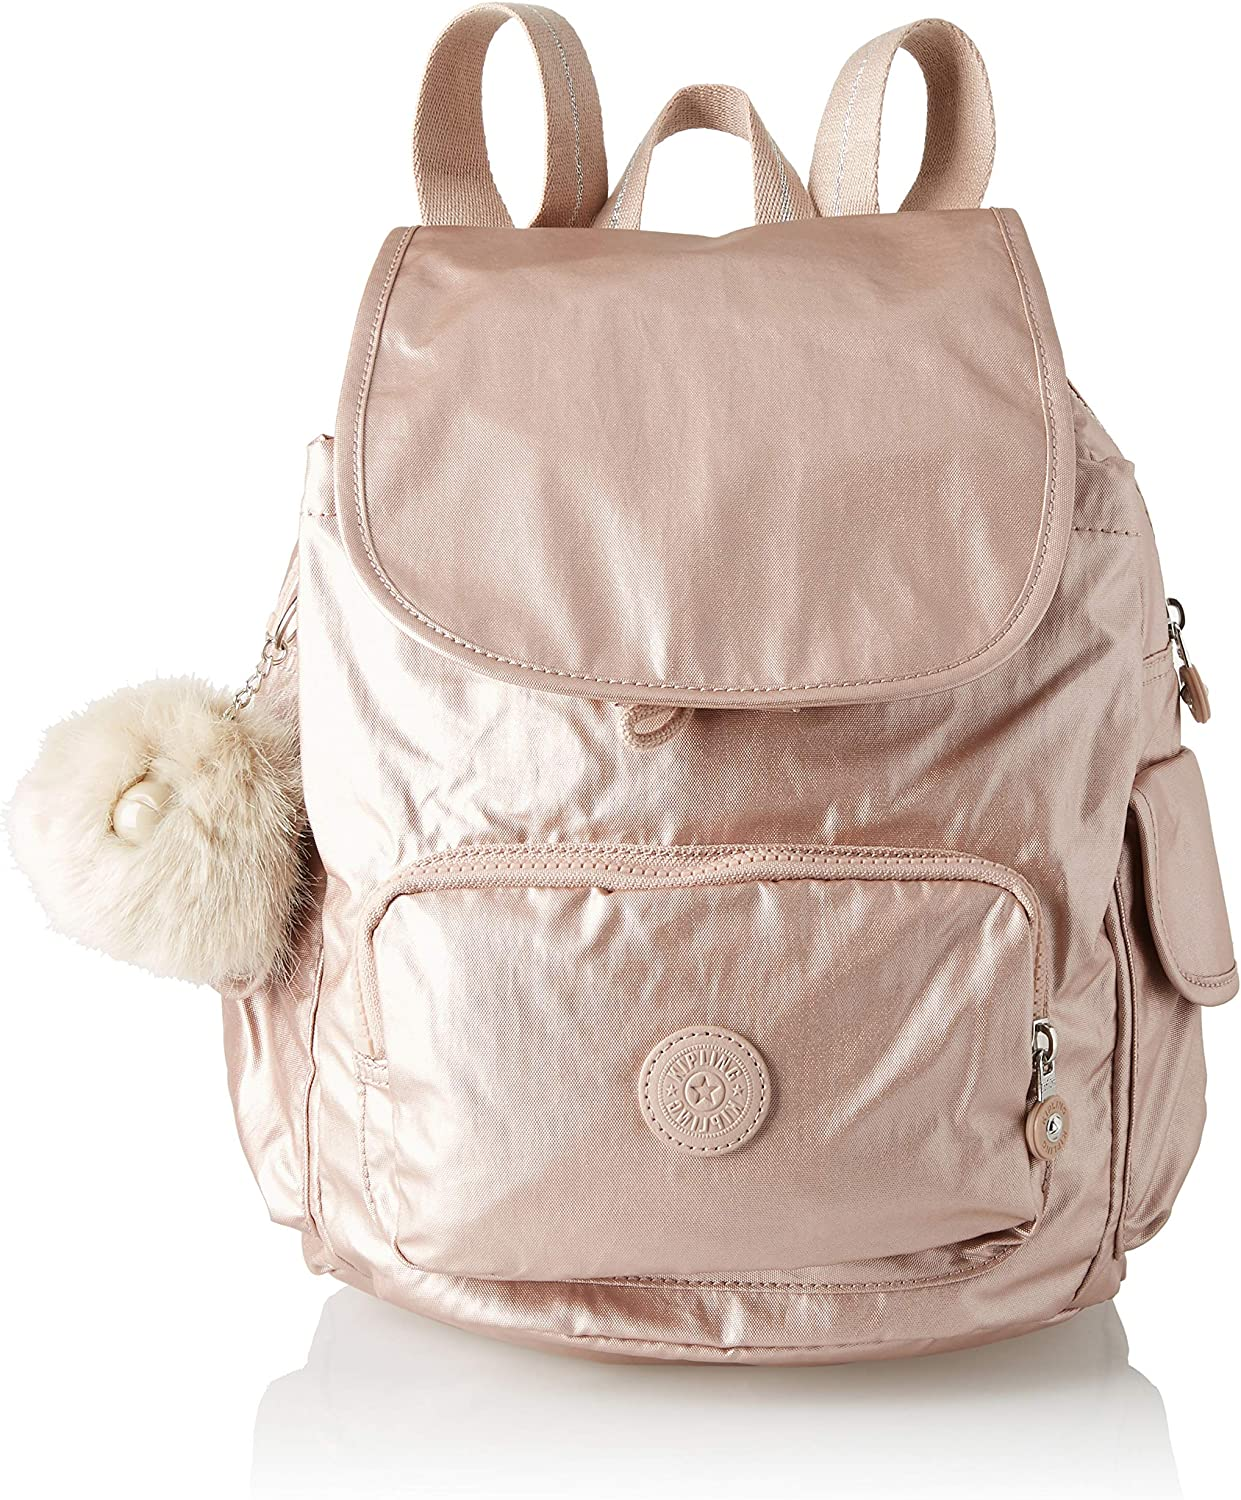 Kipling CITY PACK S Metallic Blush